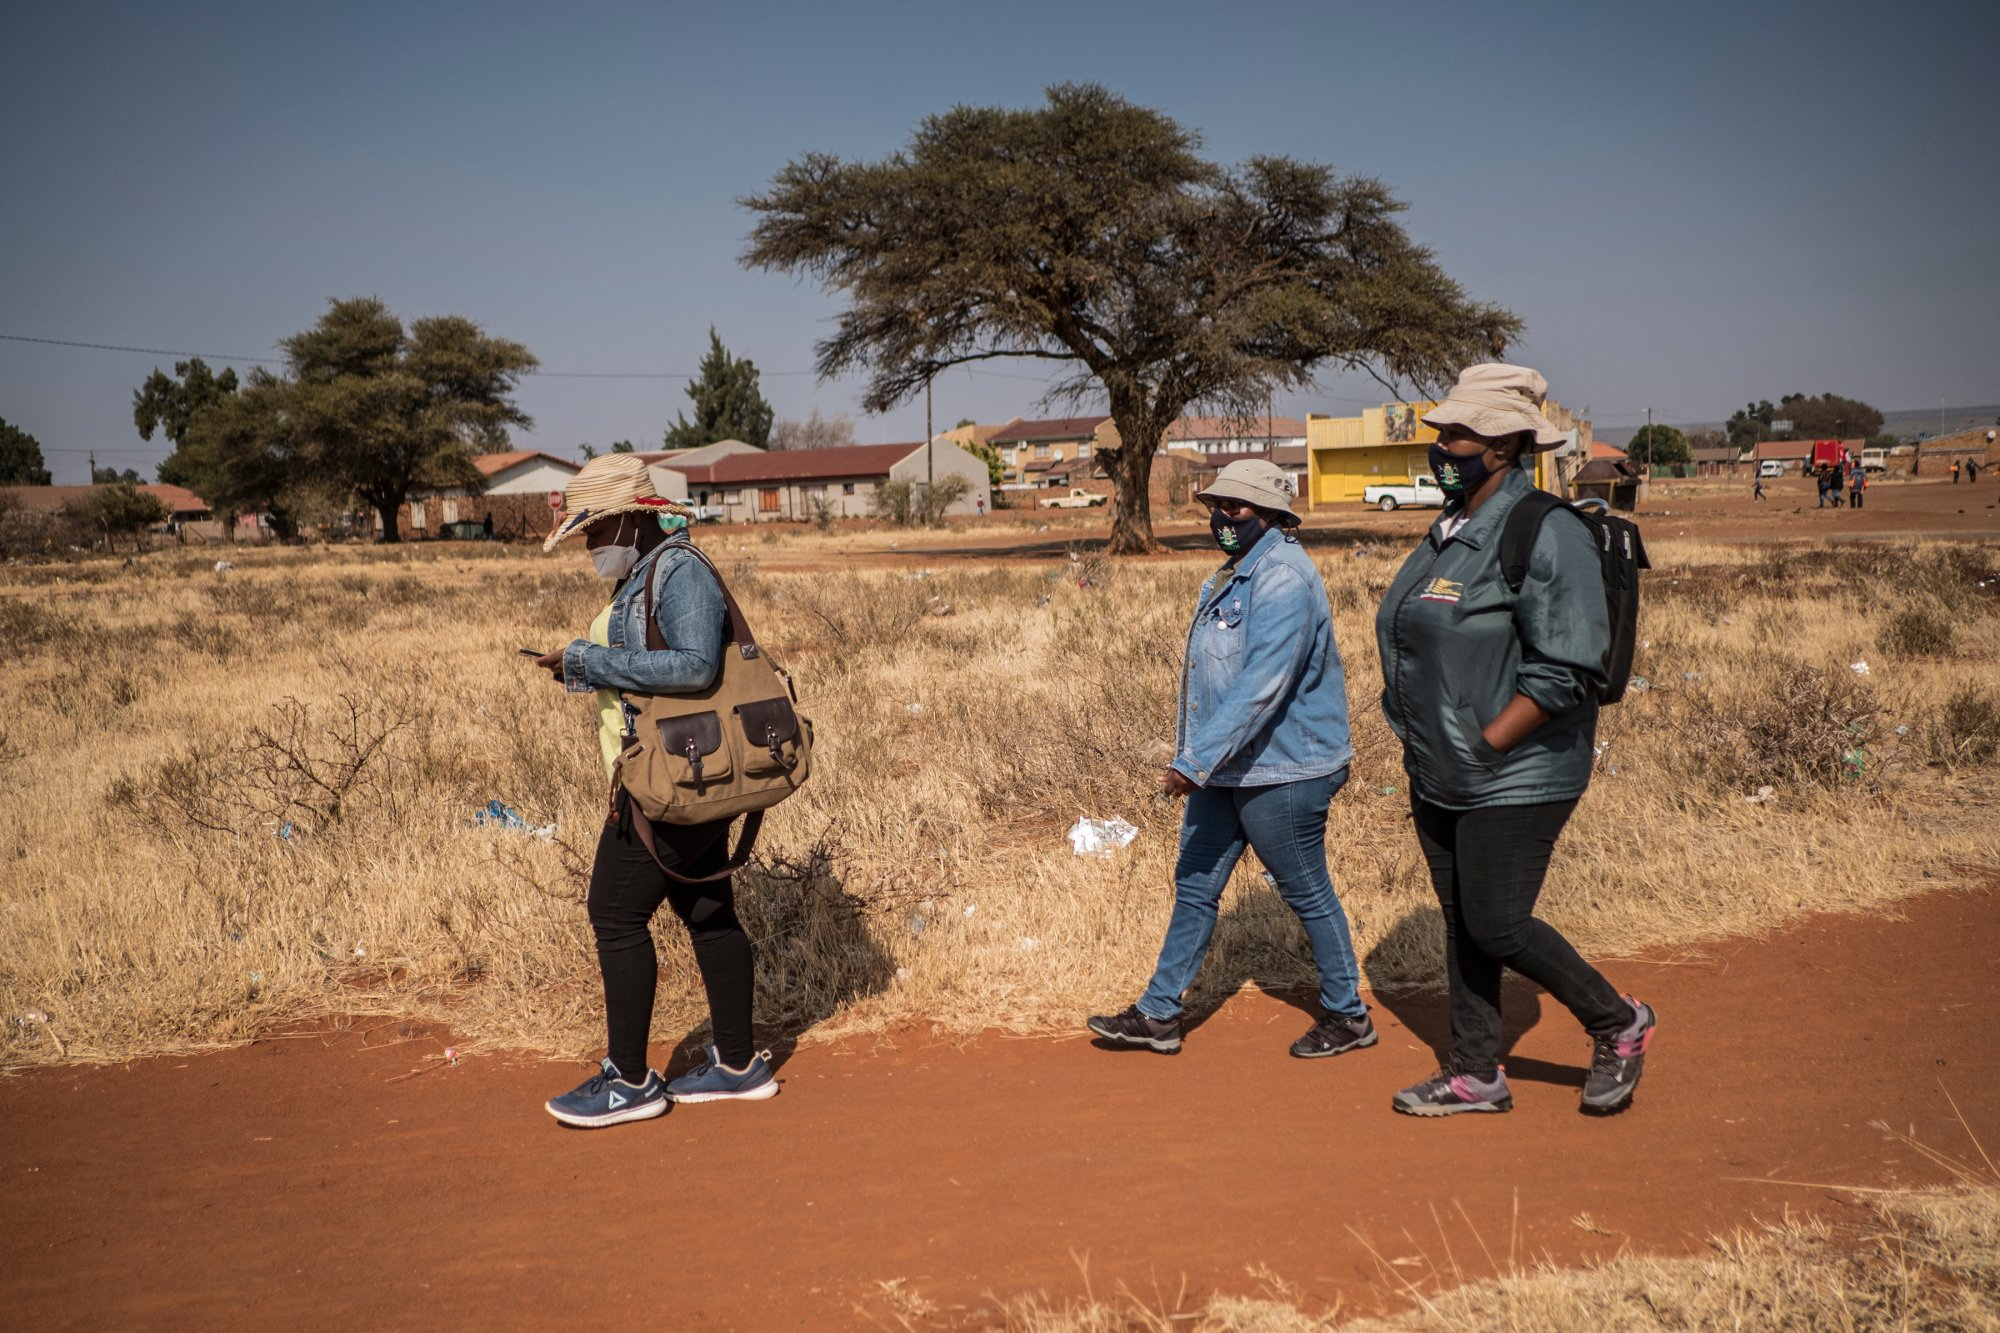 Community Healthcare Workers, Thatayaona Gaebetse (35), Emily Mkenku (55) and Kereng Motlhale (44) walk to homes to do tracing in the community close to the Pudumong Healthcare Centre in the North West Province, South Africa, on Sept. 4, 2020.   TRF